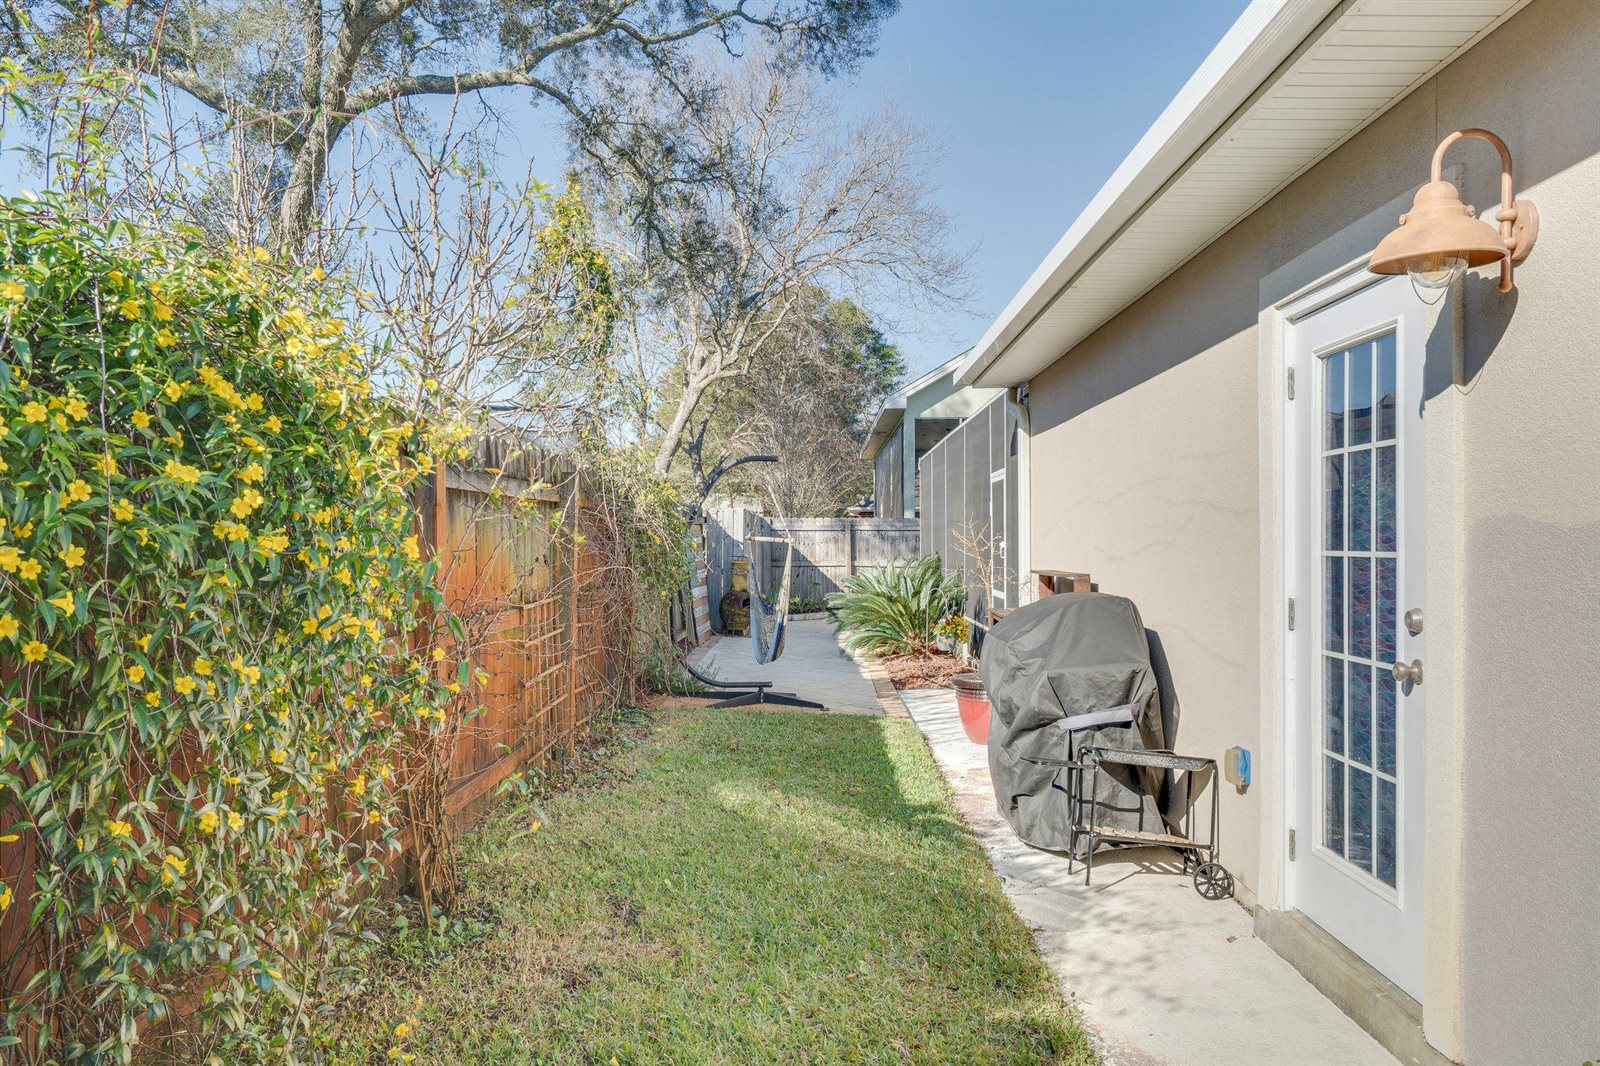 4190 Mossy Cove Court, Niceville, FL 32578